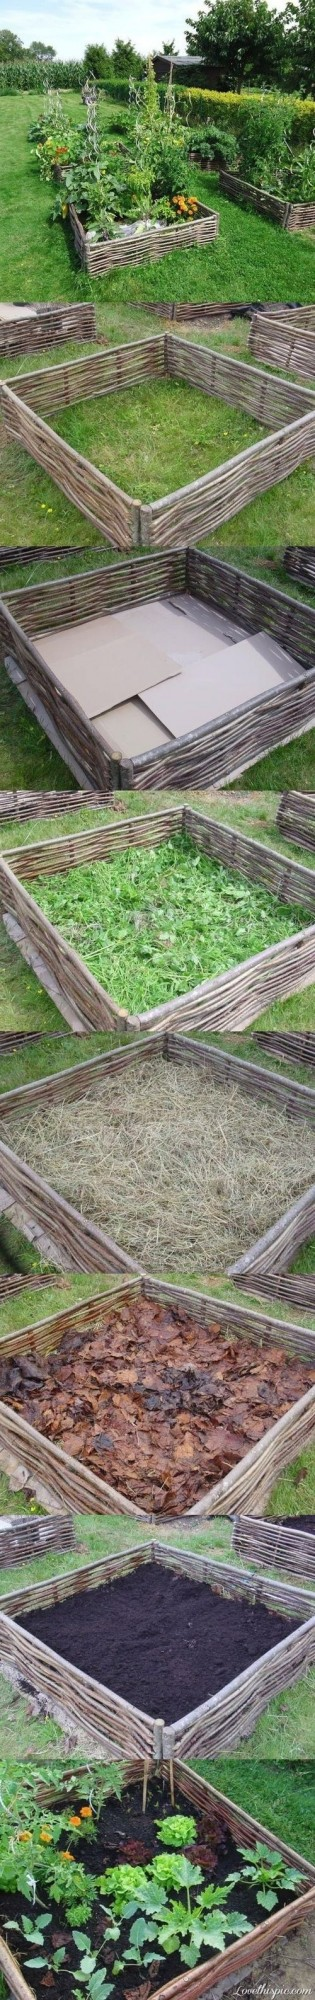 20 Useful and Easy DIY Garden Projects (3)